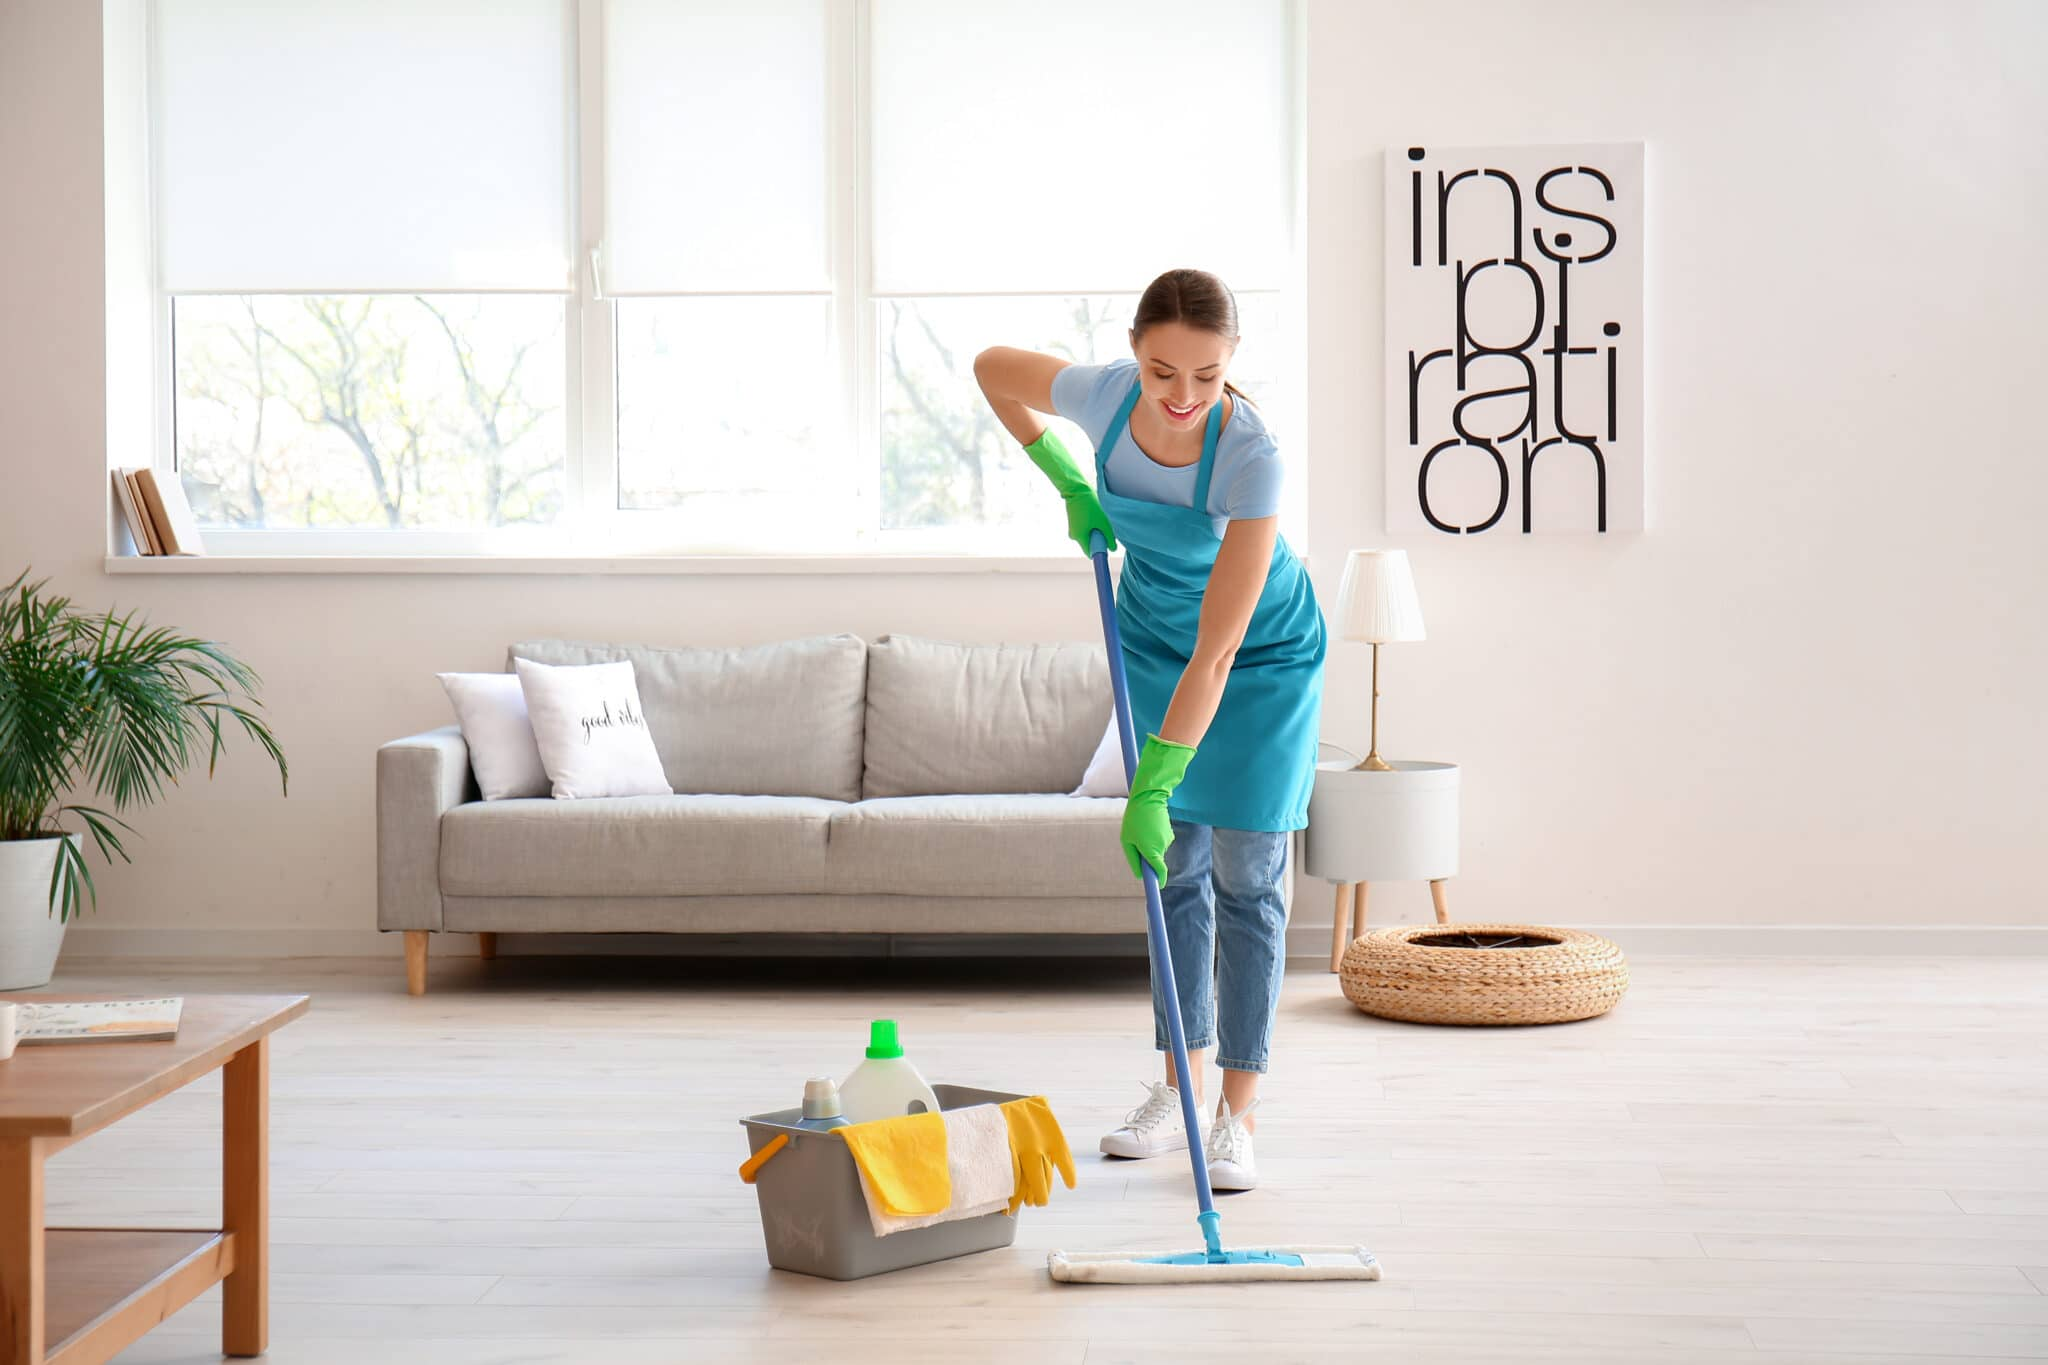 Young woman mopping floor in room